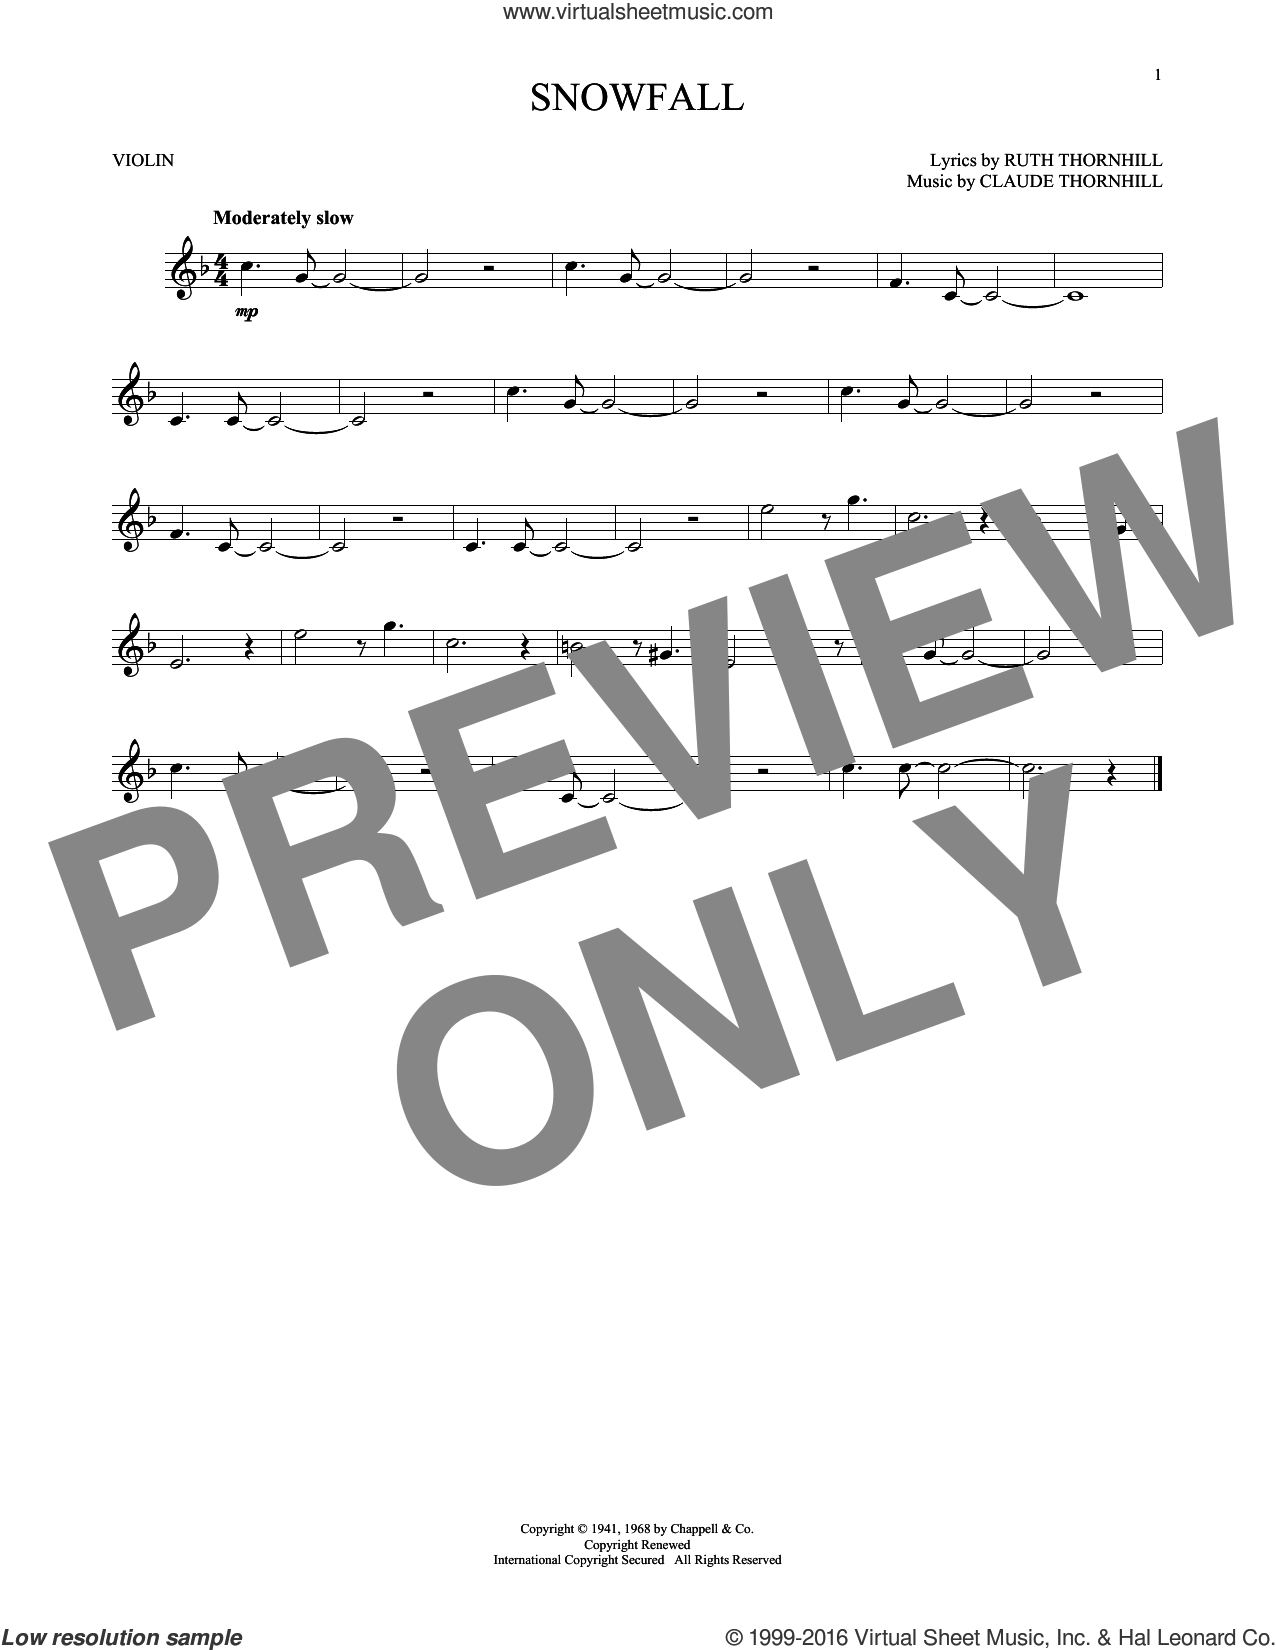 Snowfall sheet music for violin solo by Claude Thornhill, Tony Bennett, Claude & Ruth Thornhill and Ruth Thornhill, intermediate skill level